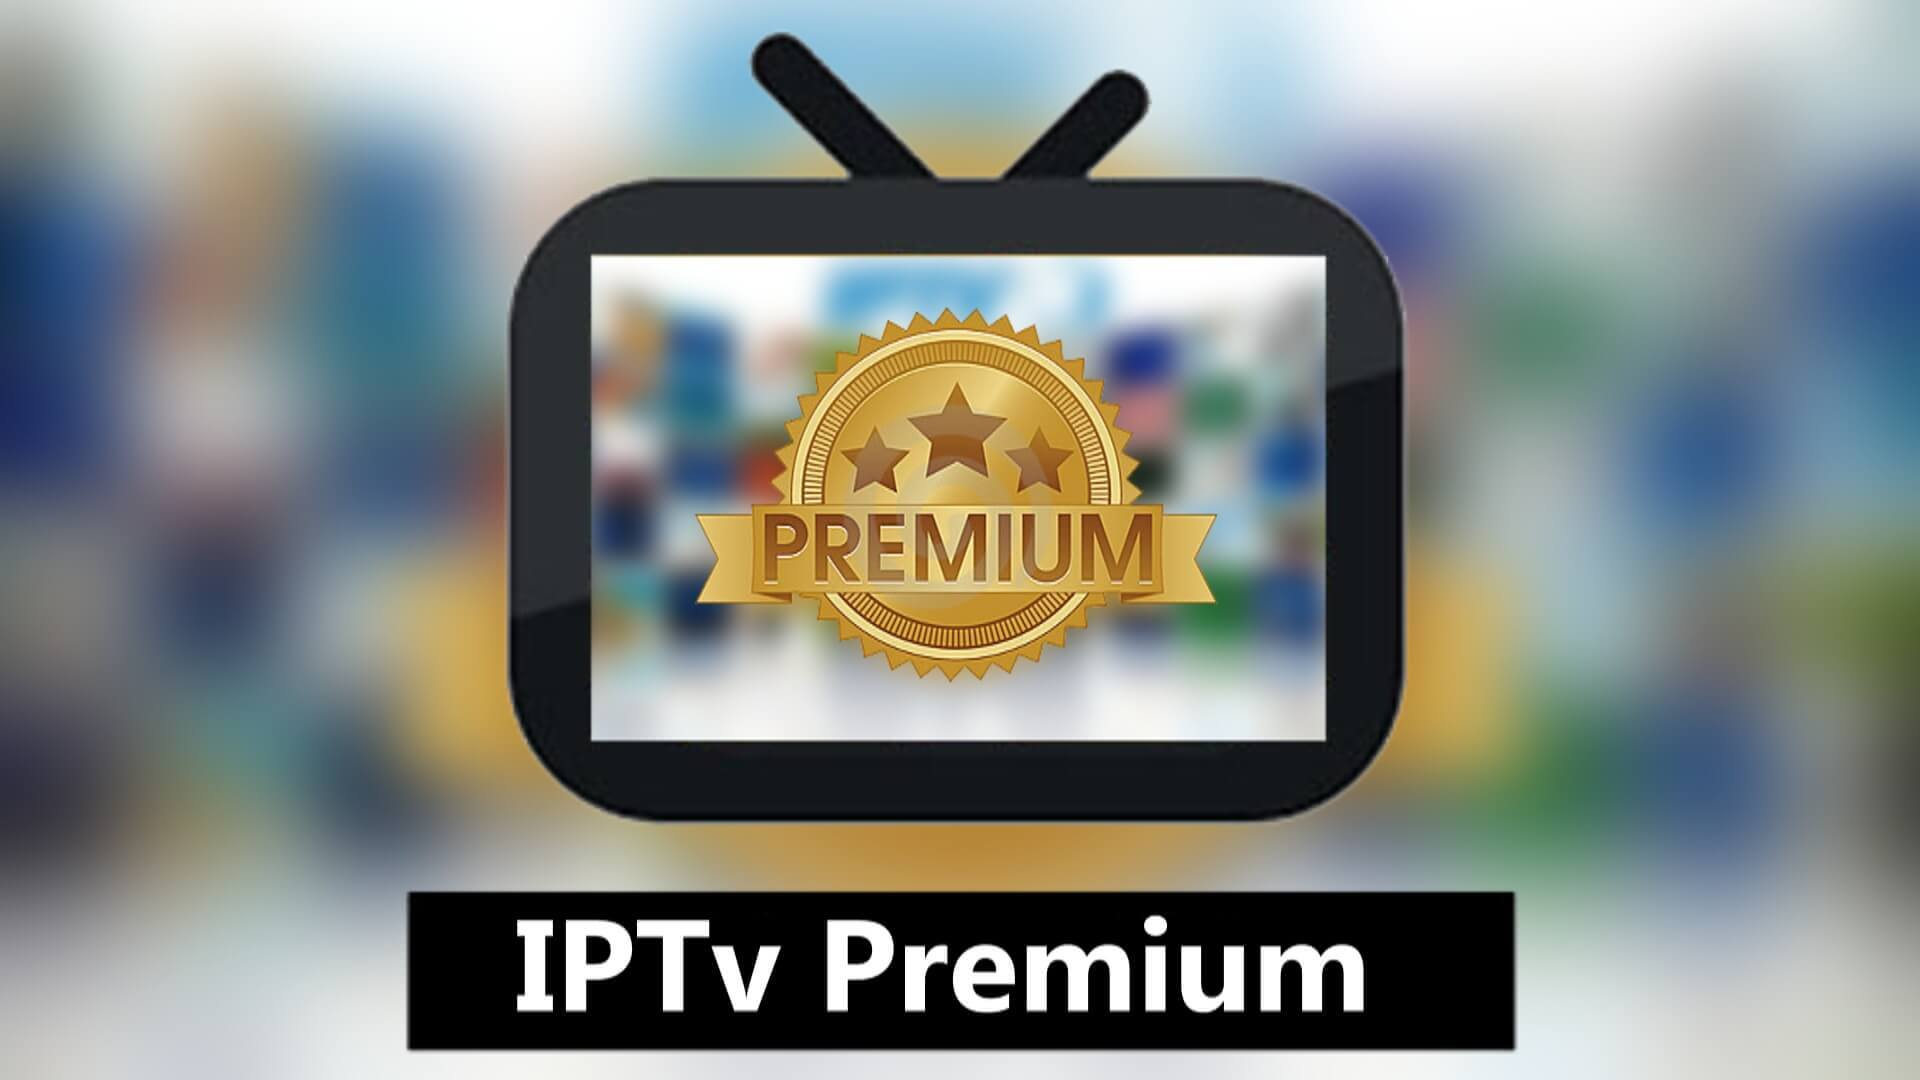 IPTV Premium By IPTv4Everyday.com